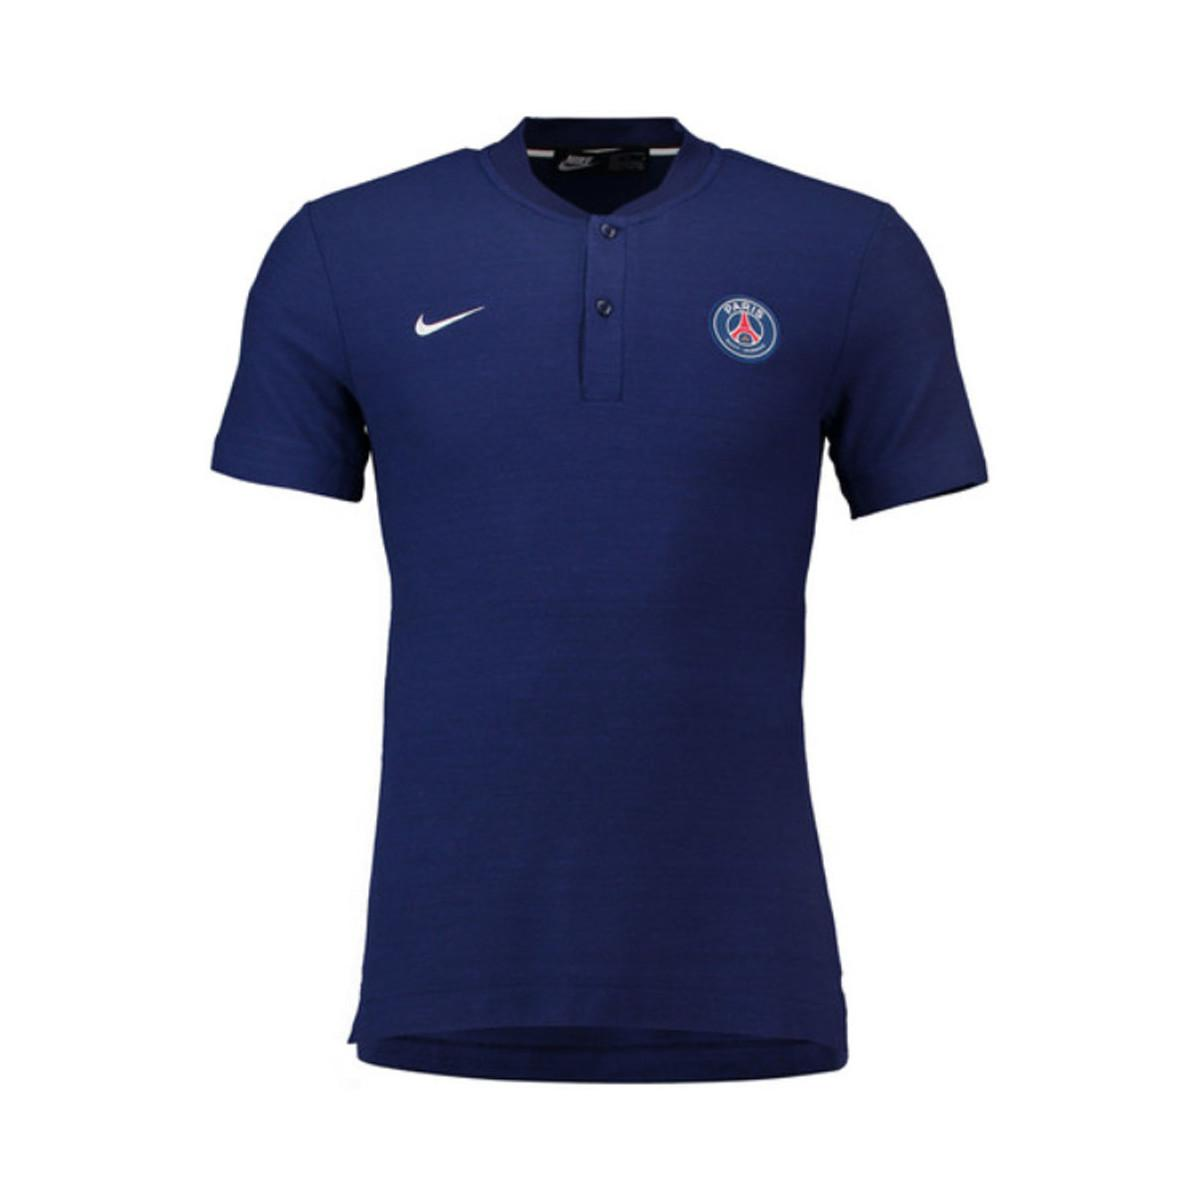 nike 2018 2019 psg authentic grand slam polo shirt men 39 s polo shirt in blue in blue for men lyst. Black Bedroom Furniture Sets. Home Design Ideas